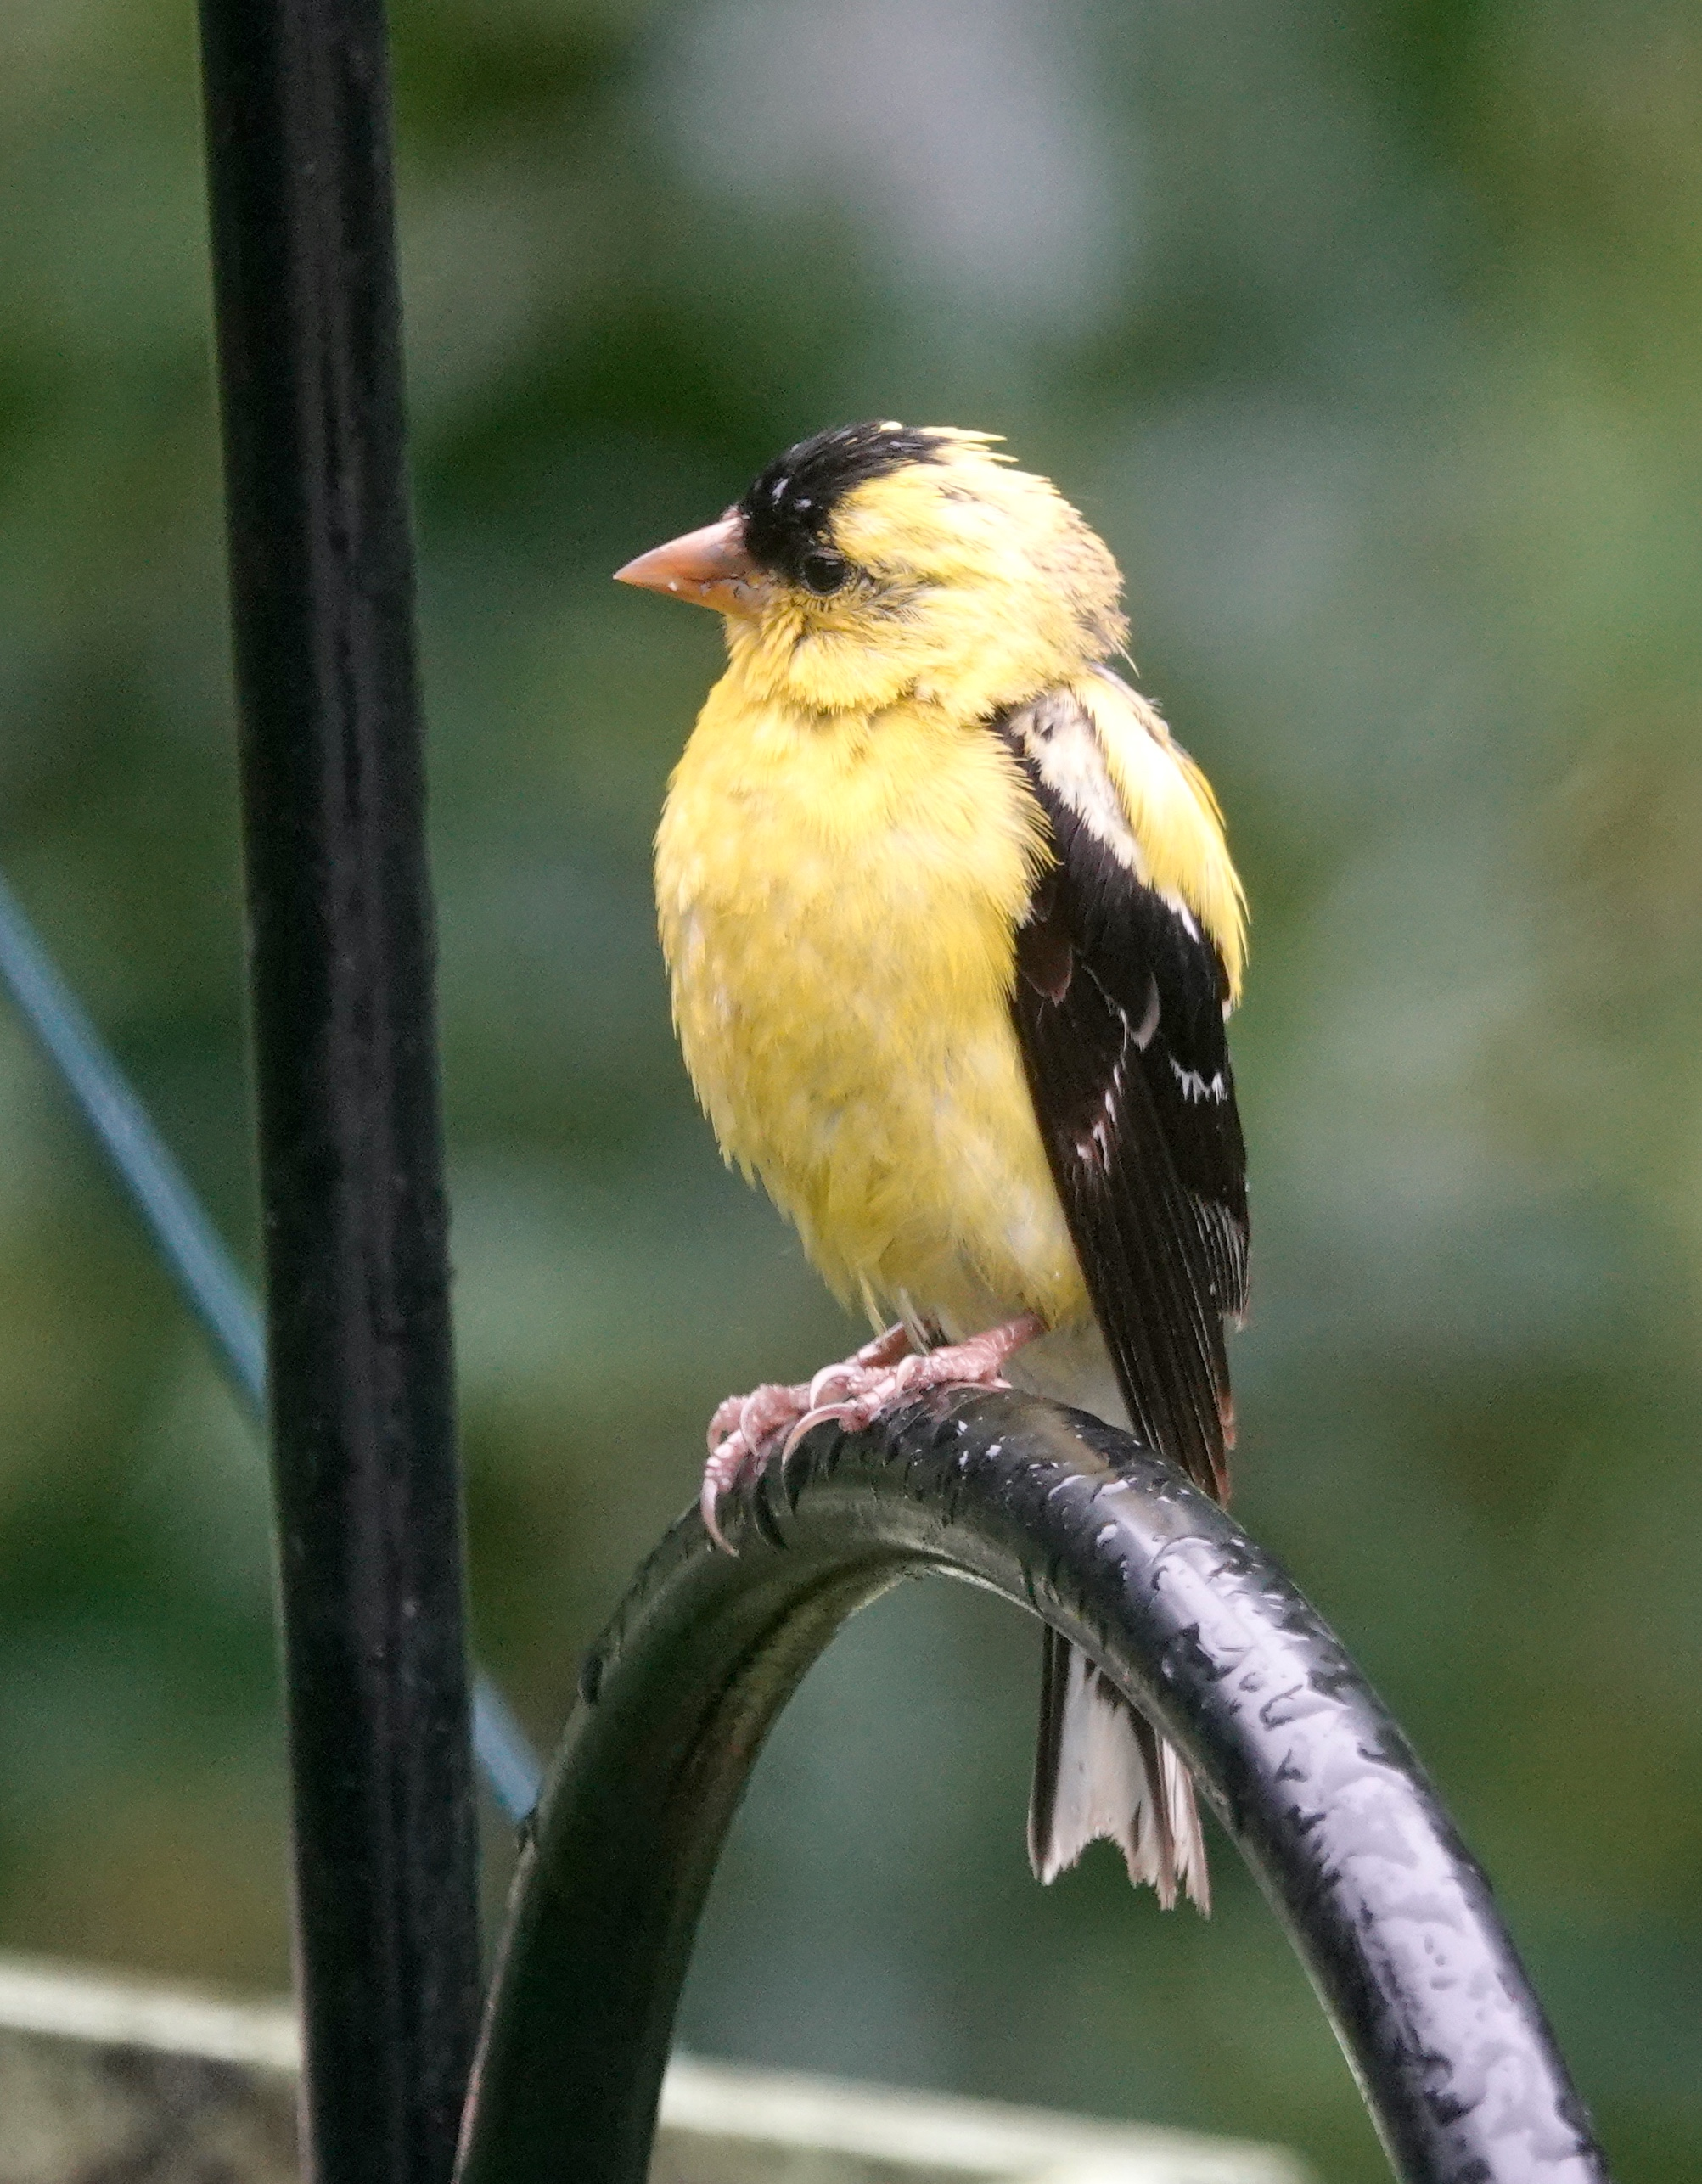 A goldfinch that had forgotten his umbrella. His cheery chattering brightens even the cloudiest of days.